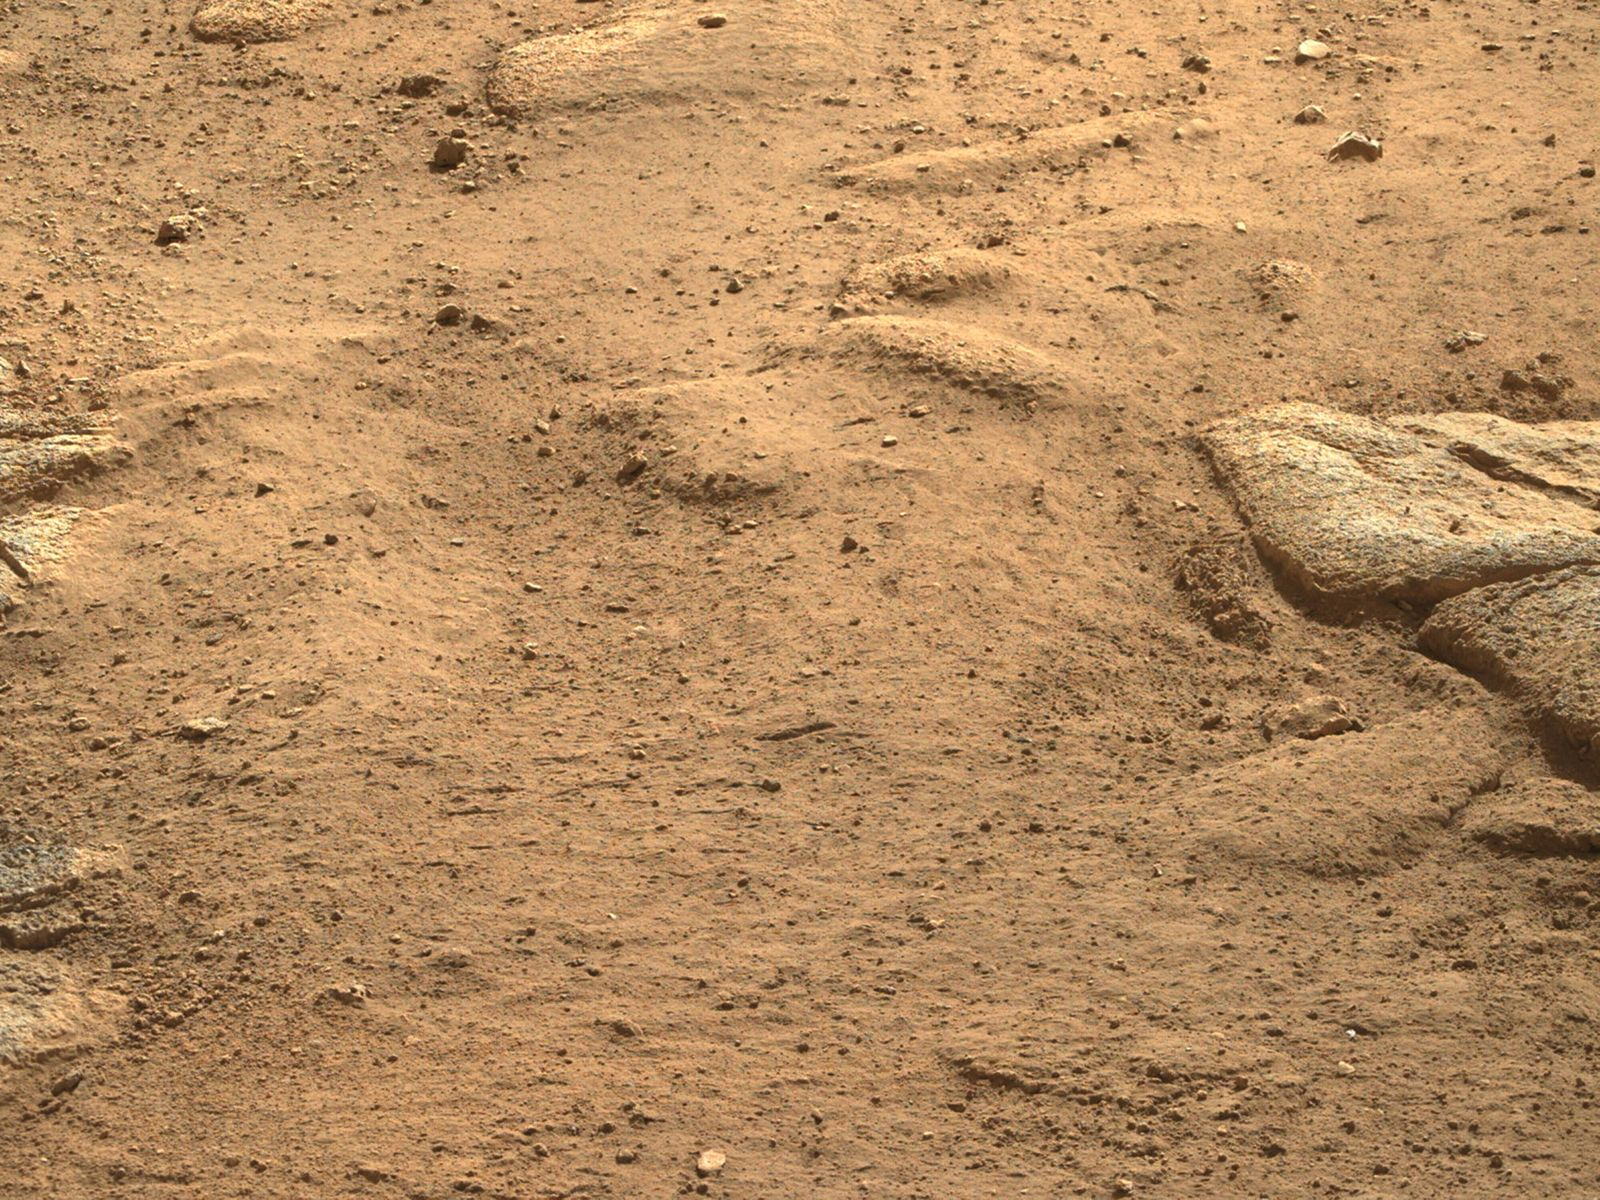 NASA s Mars Perseverance rover acquired this image using its Right Mastcam-Z camera. Mastcam-Z is a pair of cameras loc